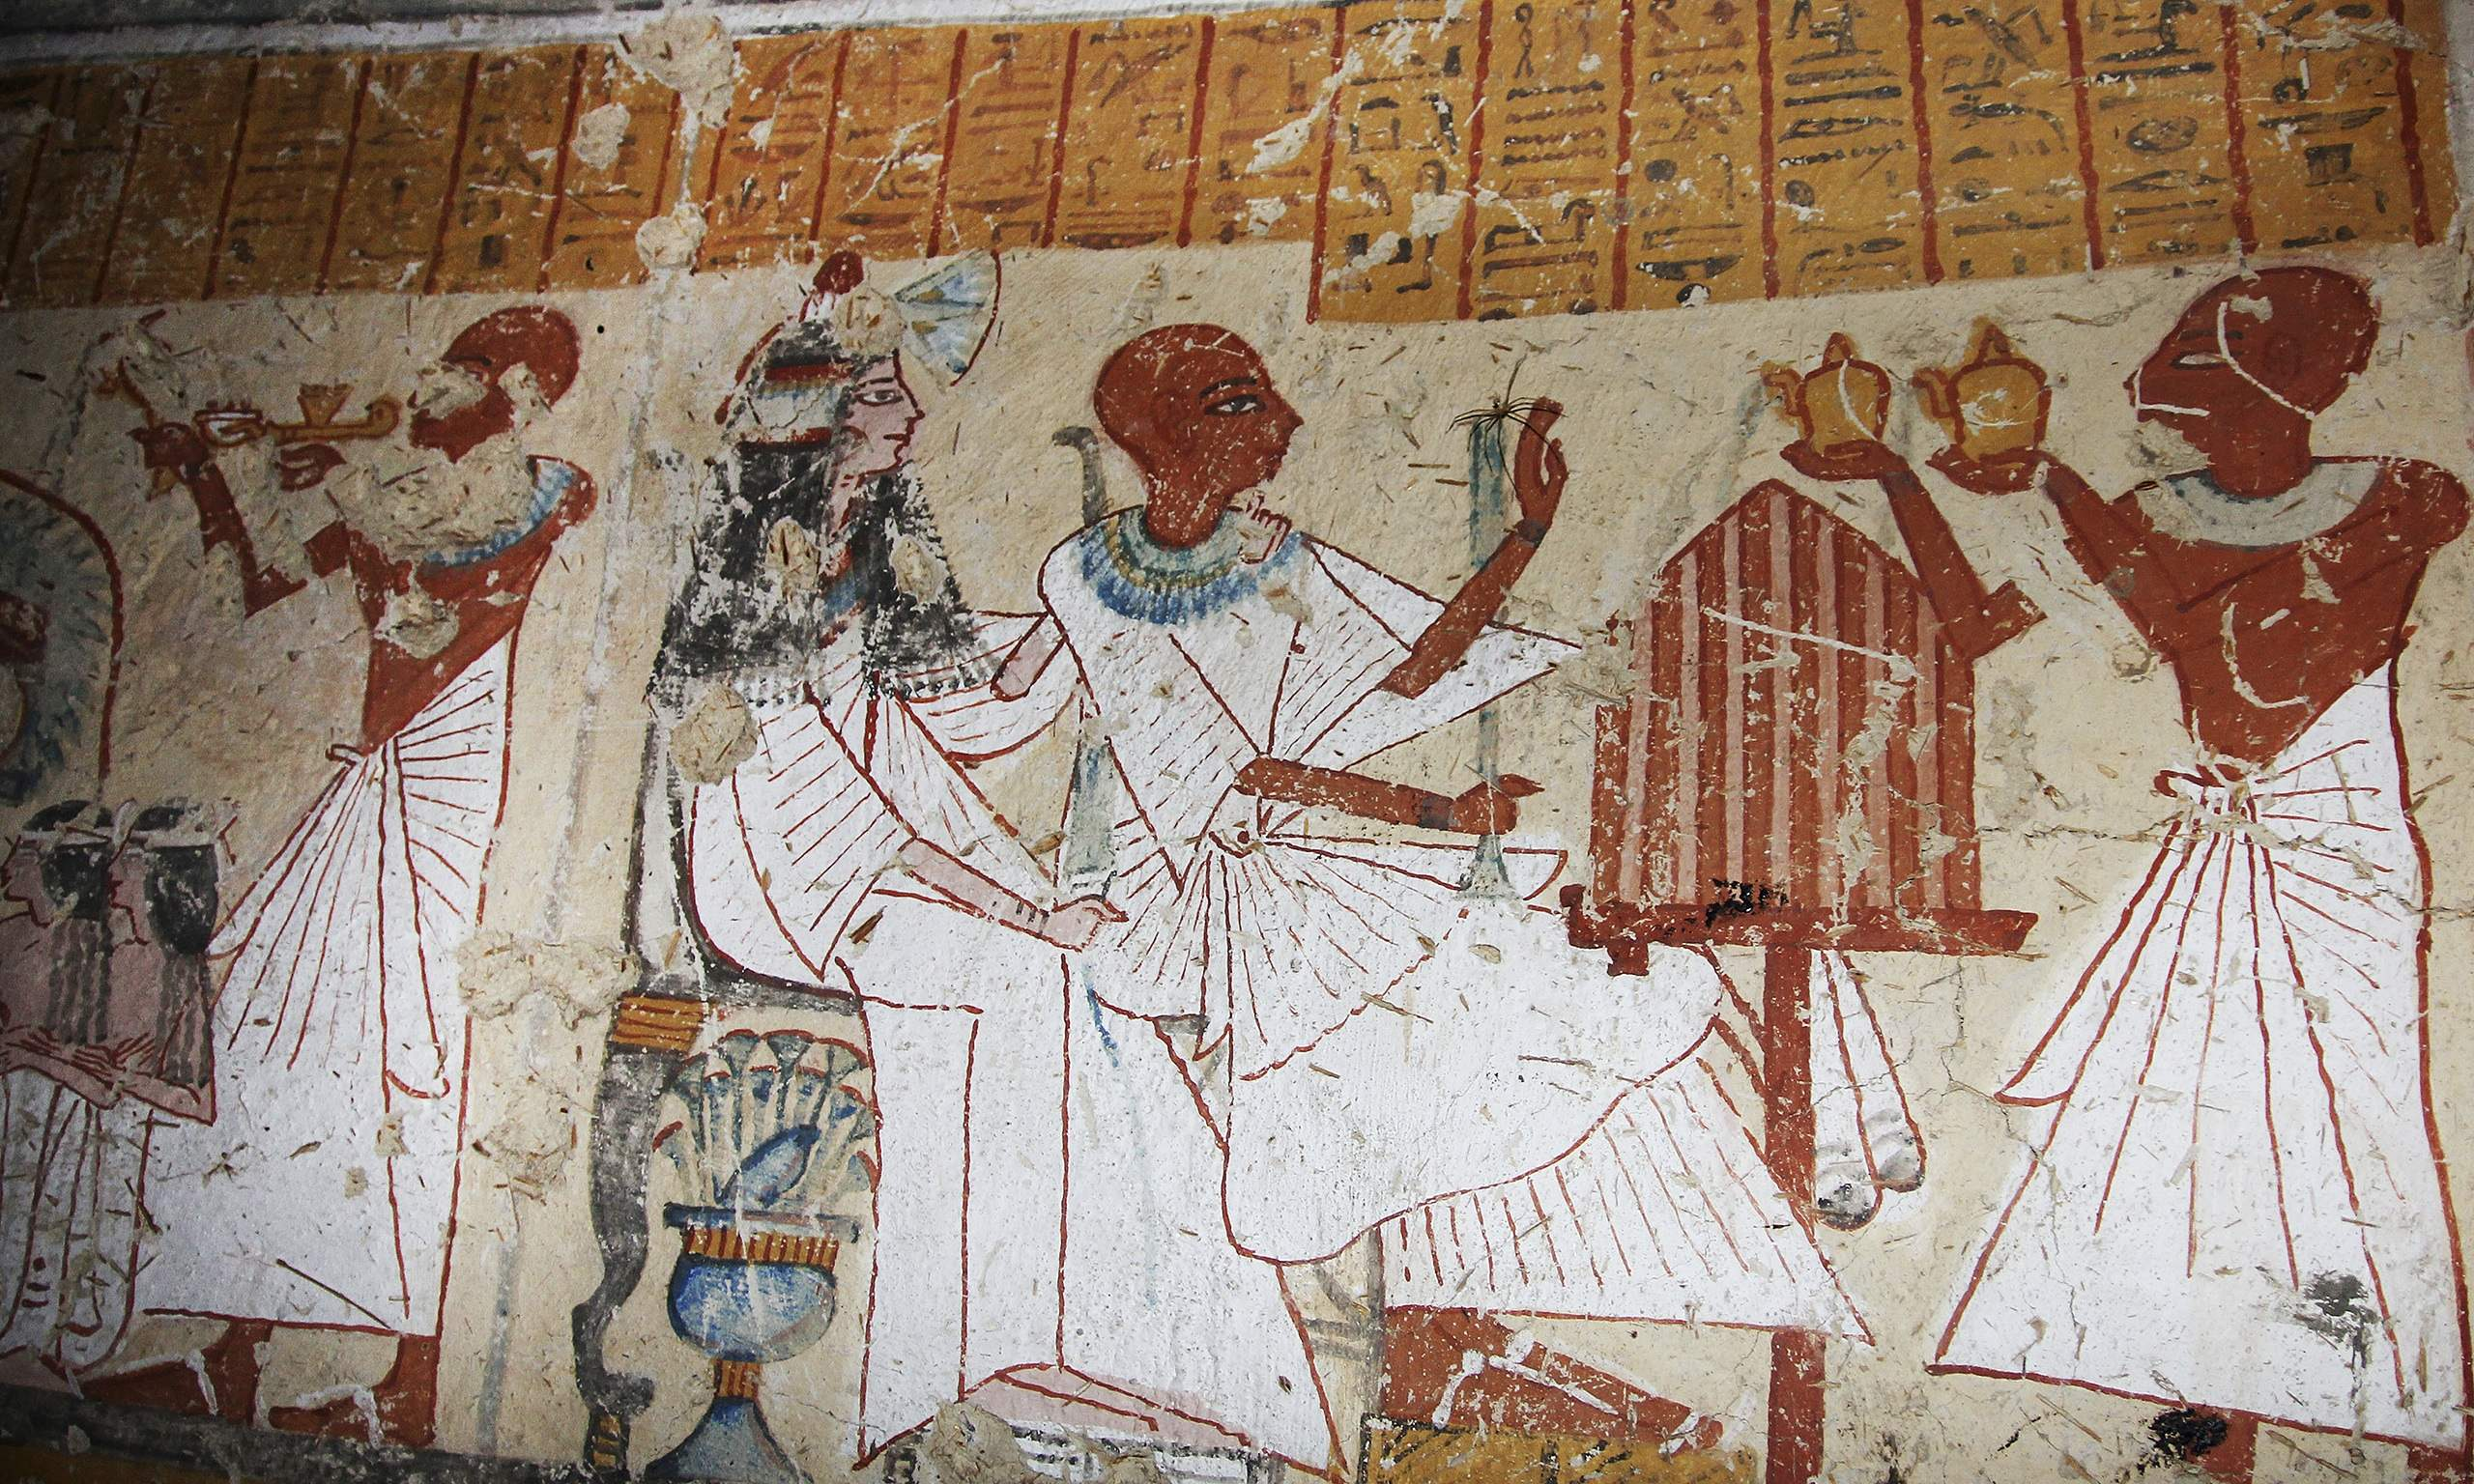 Scenes from ancient Egypt found on the walls of a newly discovered tomb in Luxor.